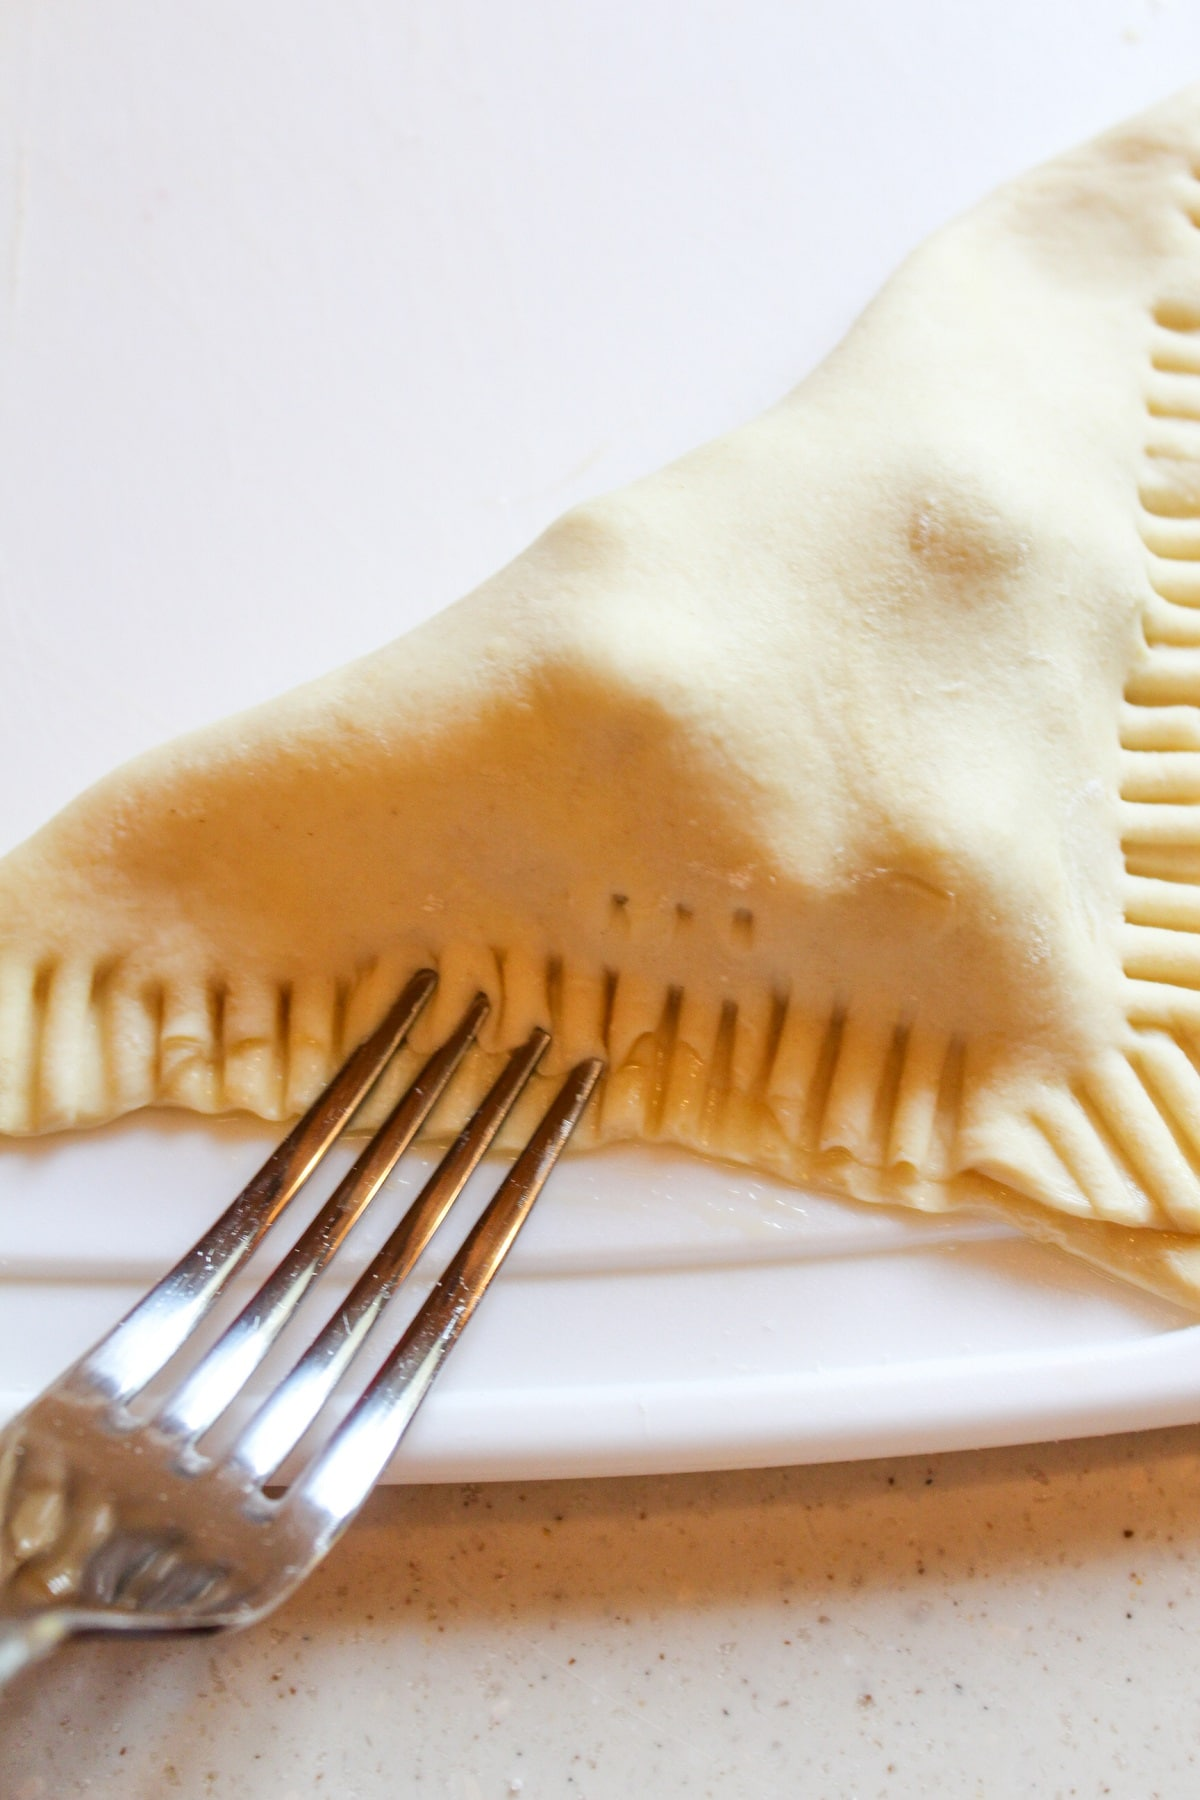 sealing edges of dough with a fork